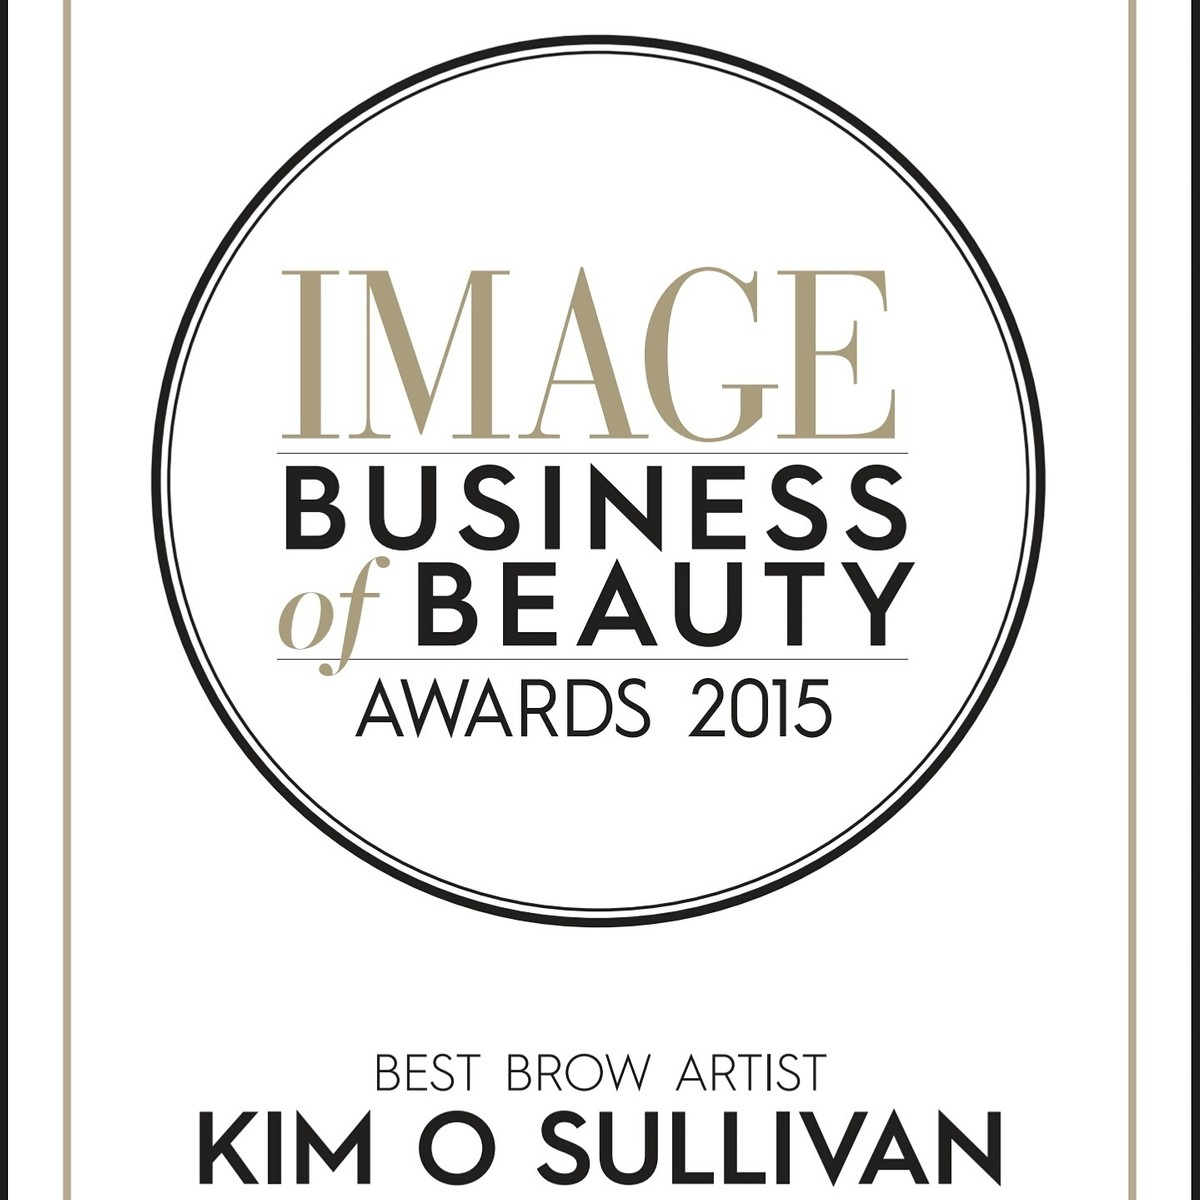 Image Business of Beauty Awards 2015